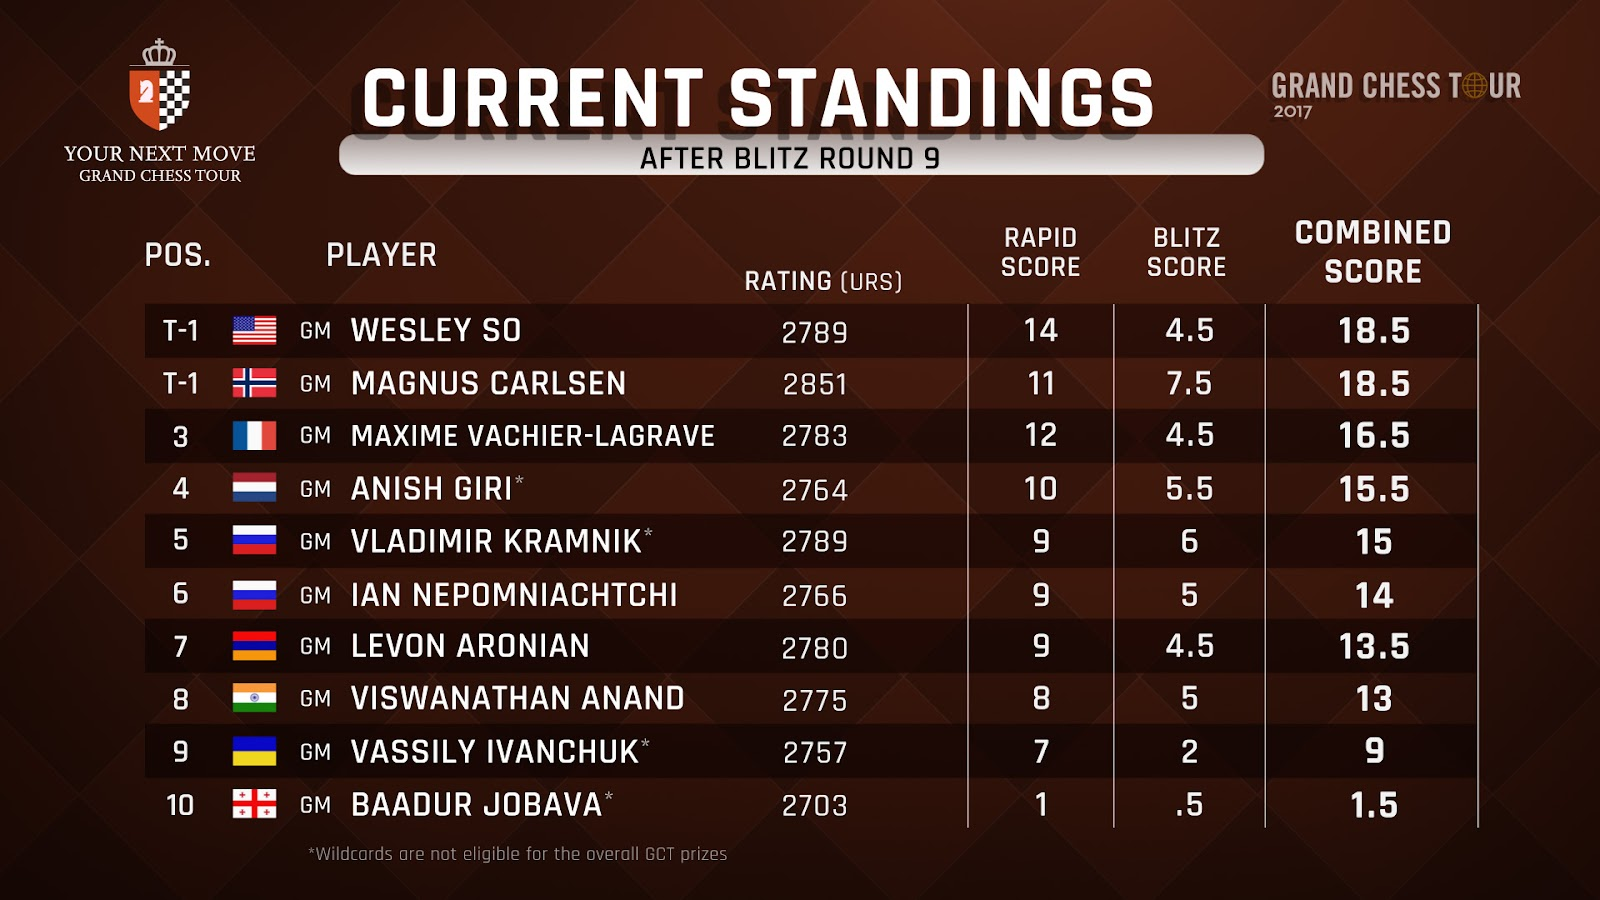 STANDINGS_AFTER BLITZ R9.jpg